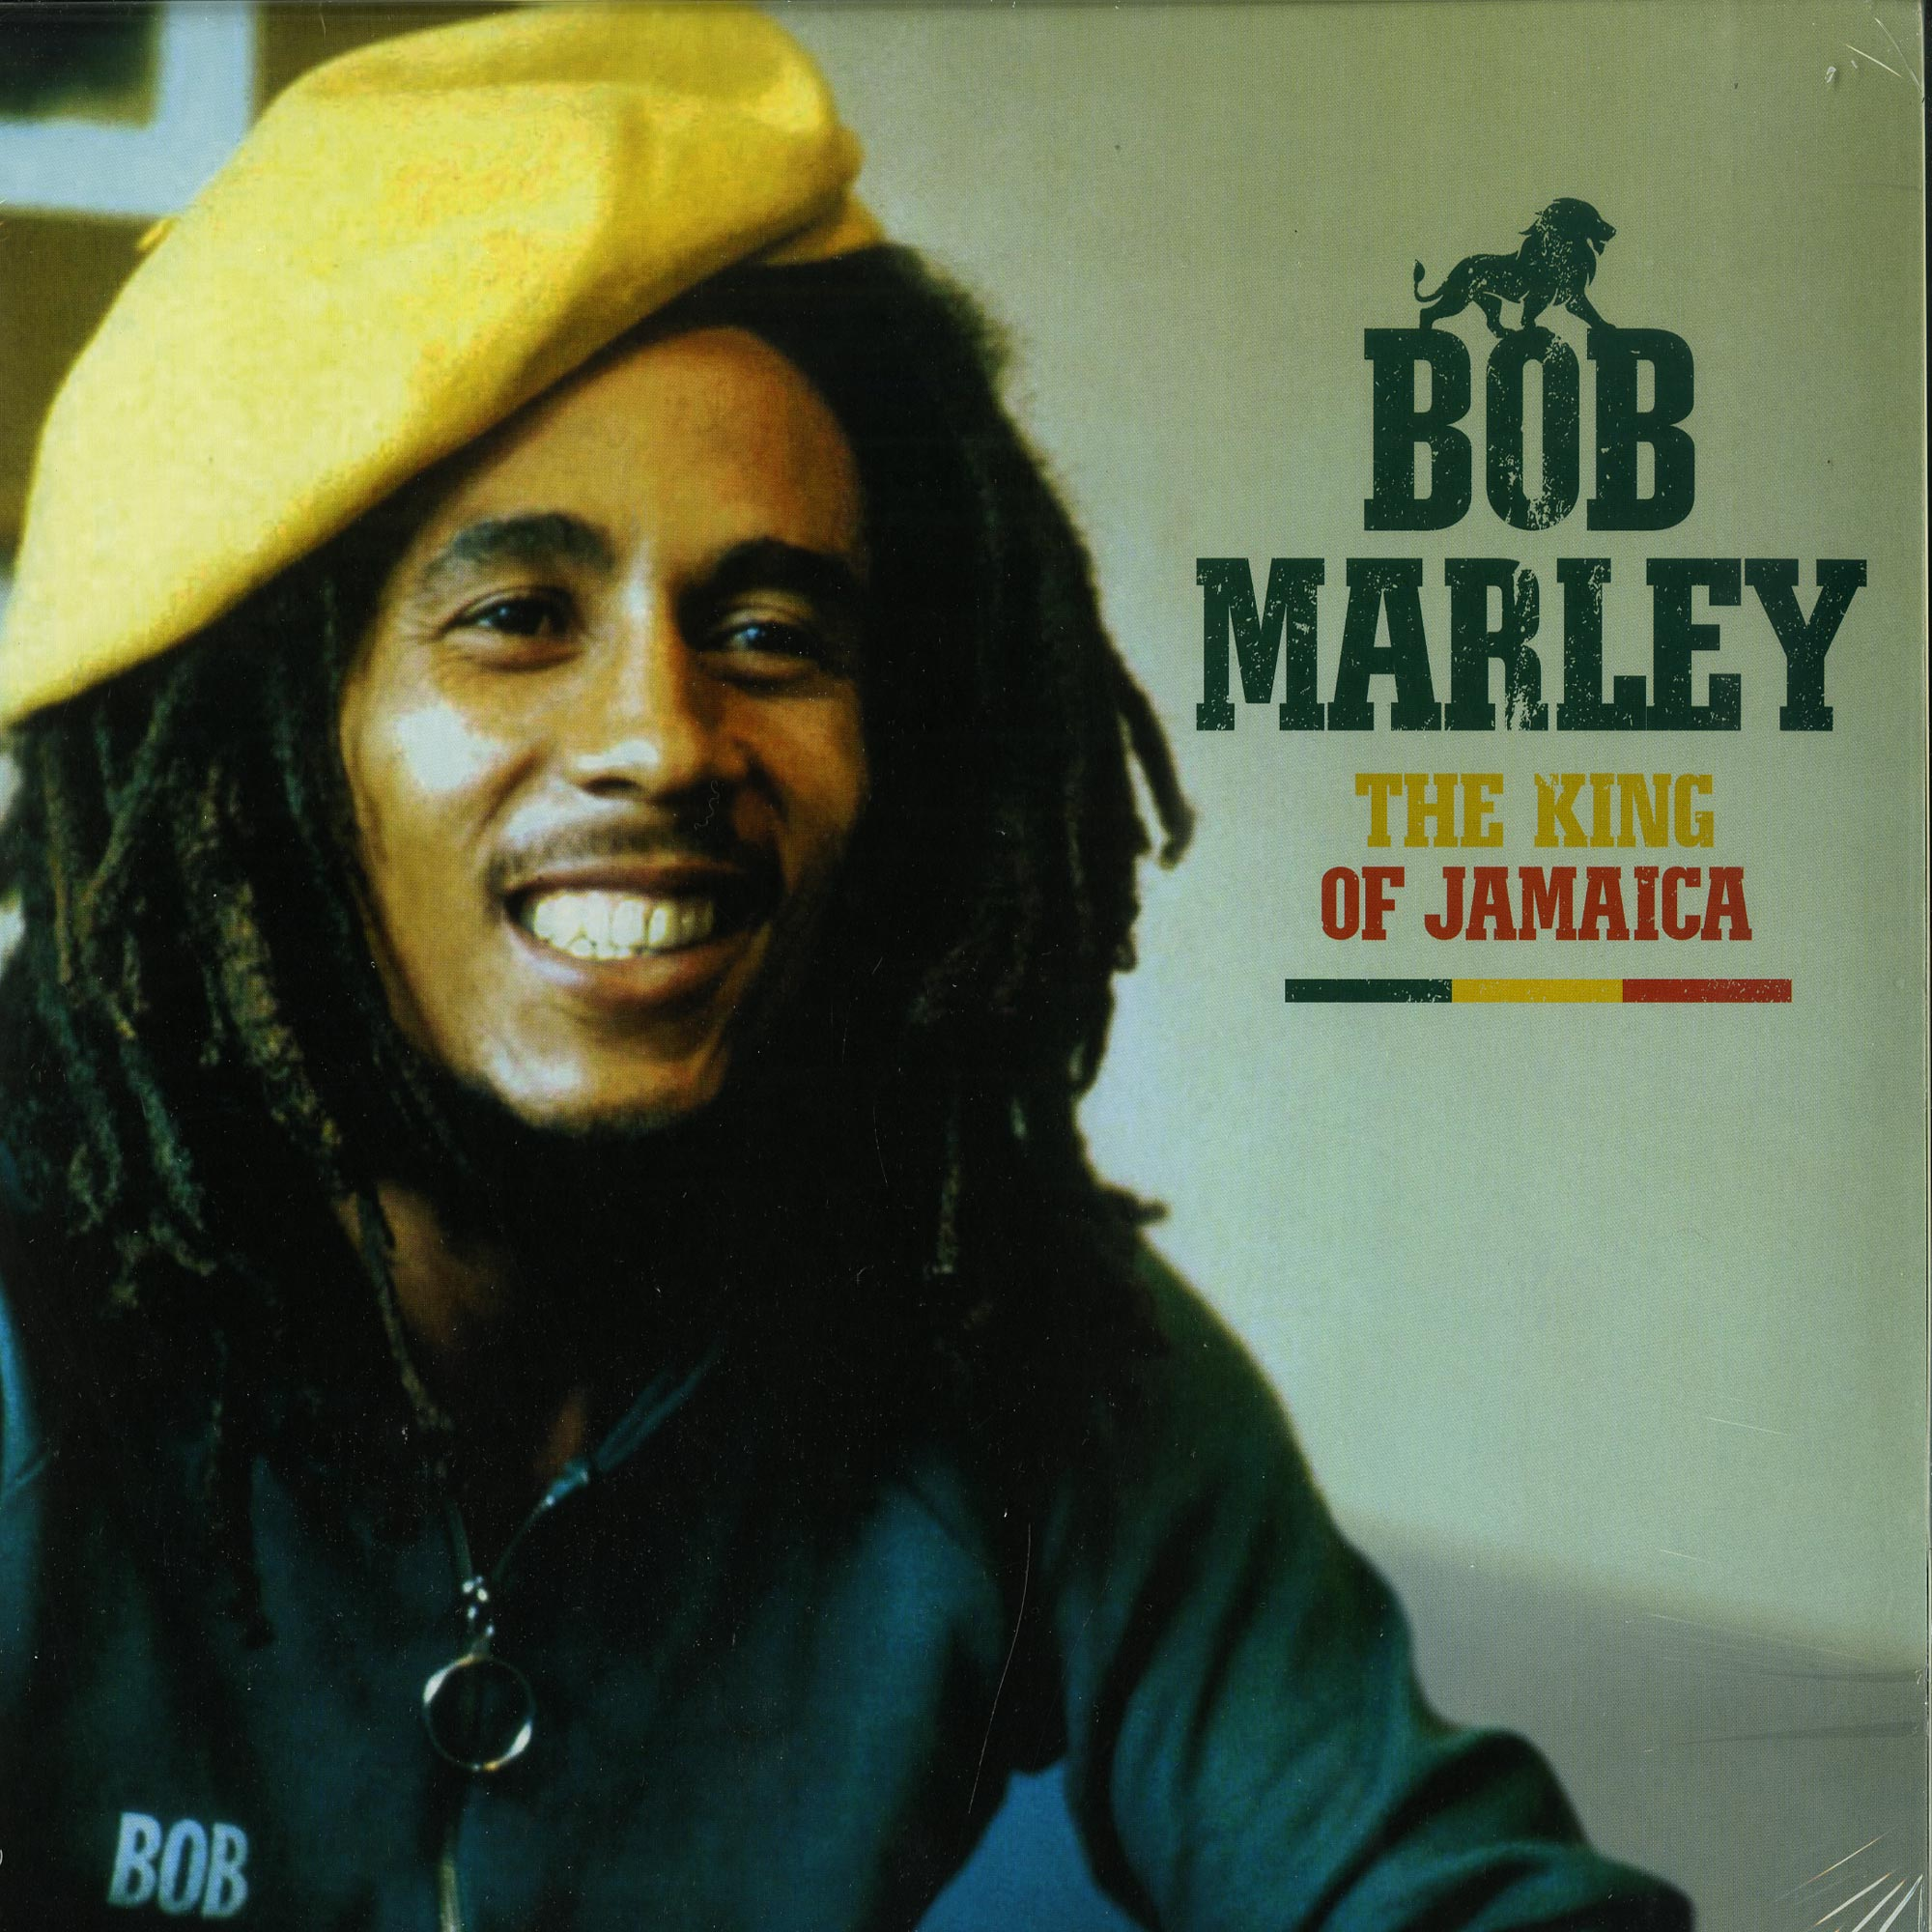 Bob Marley - THE KING OF JAMAICA